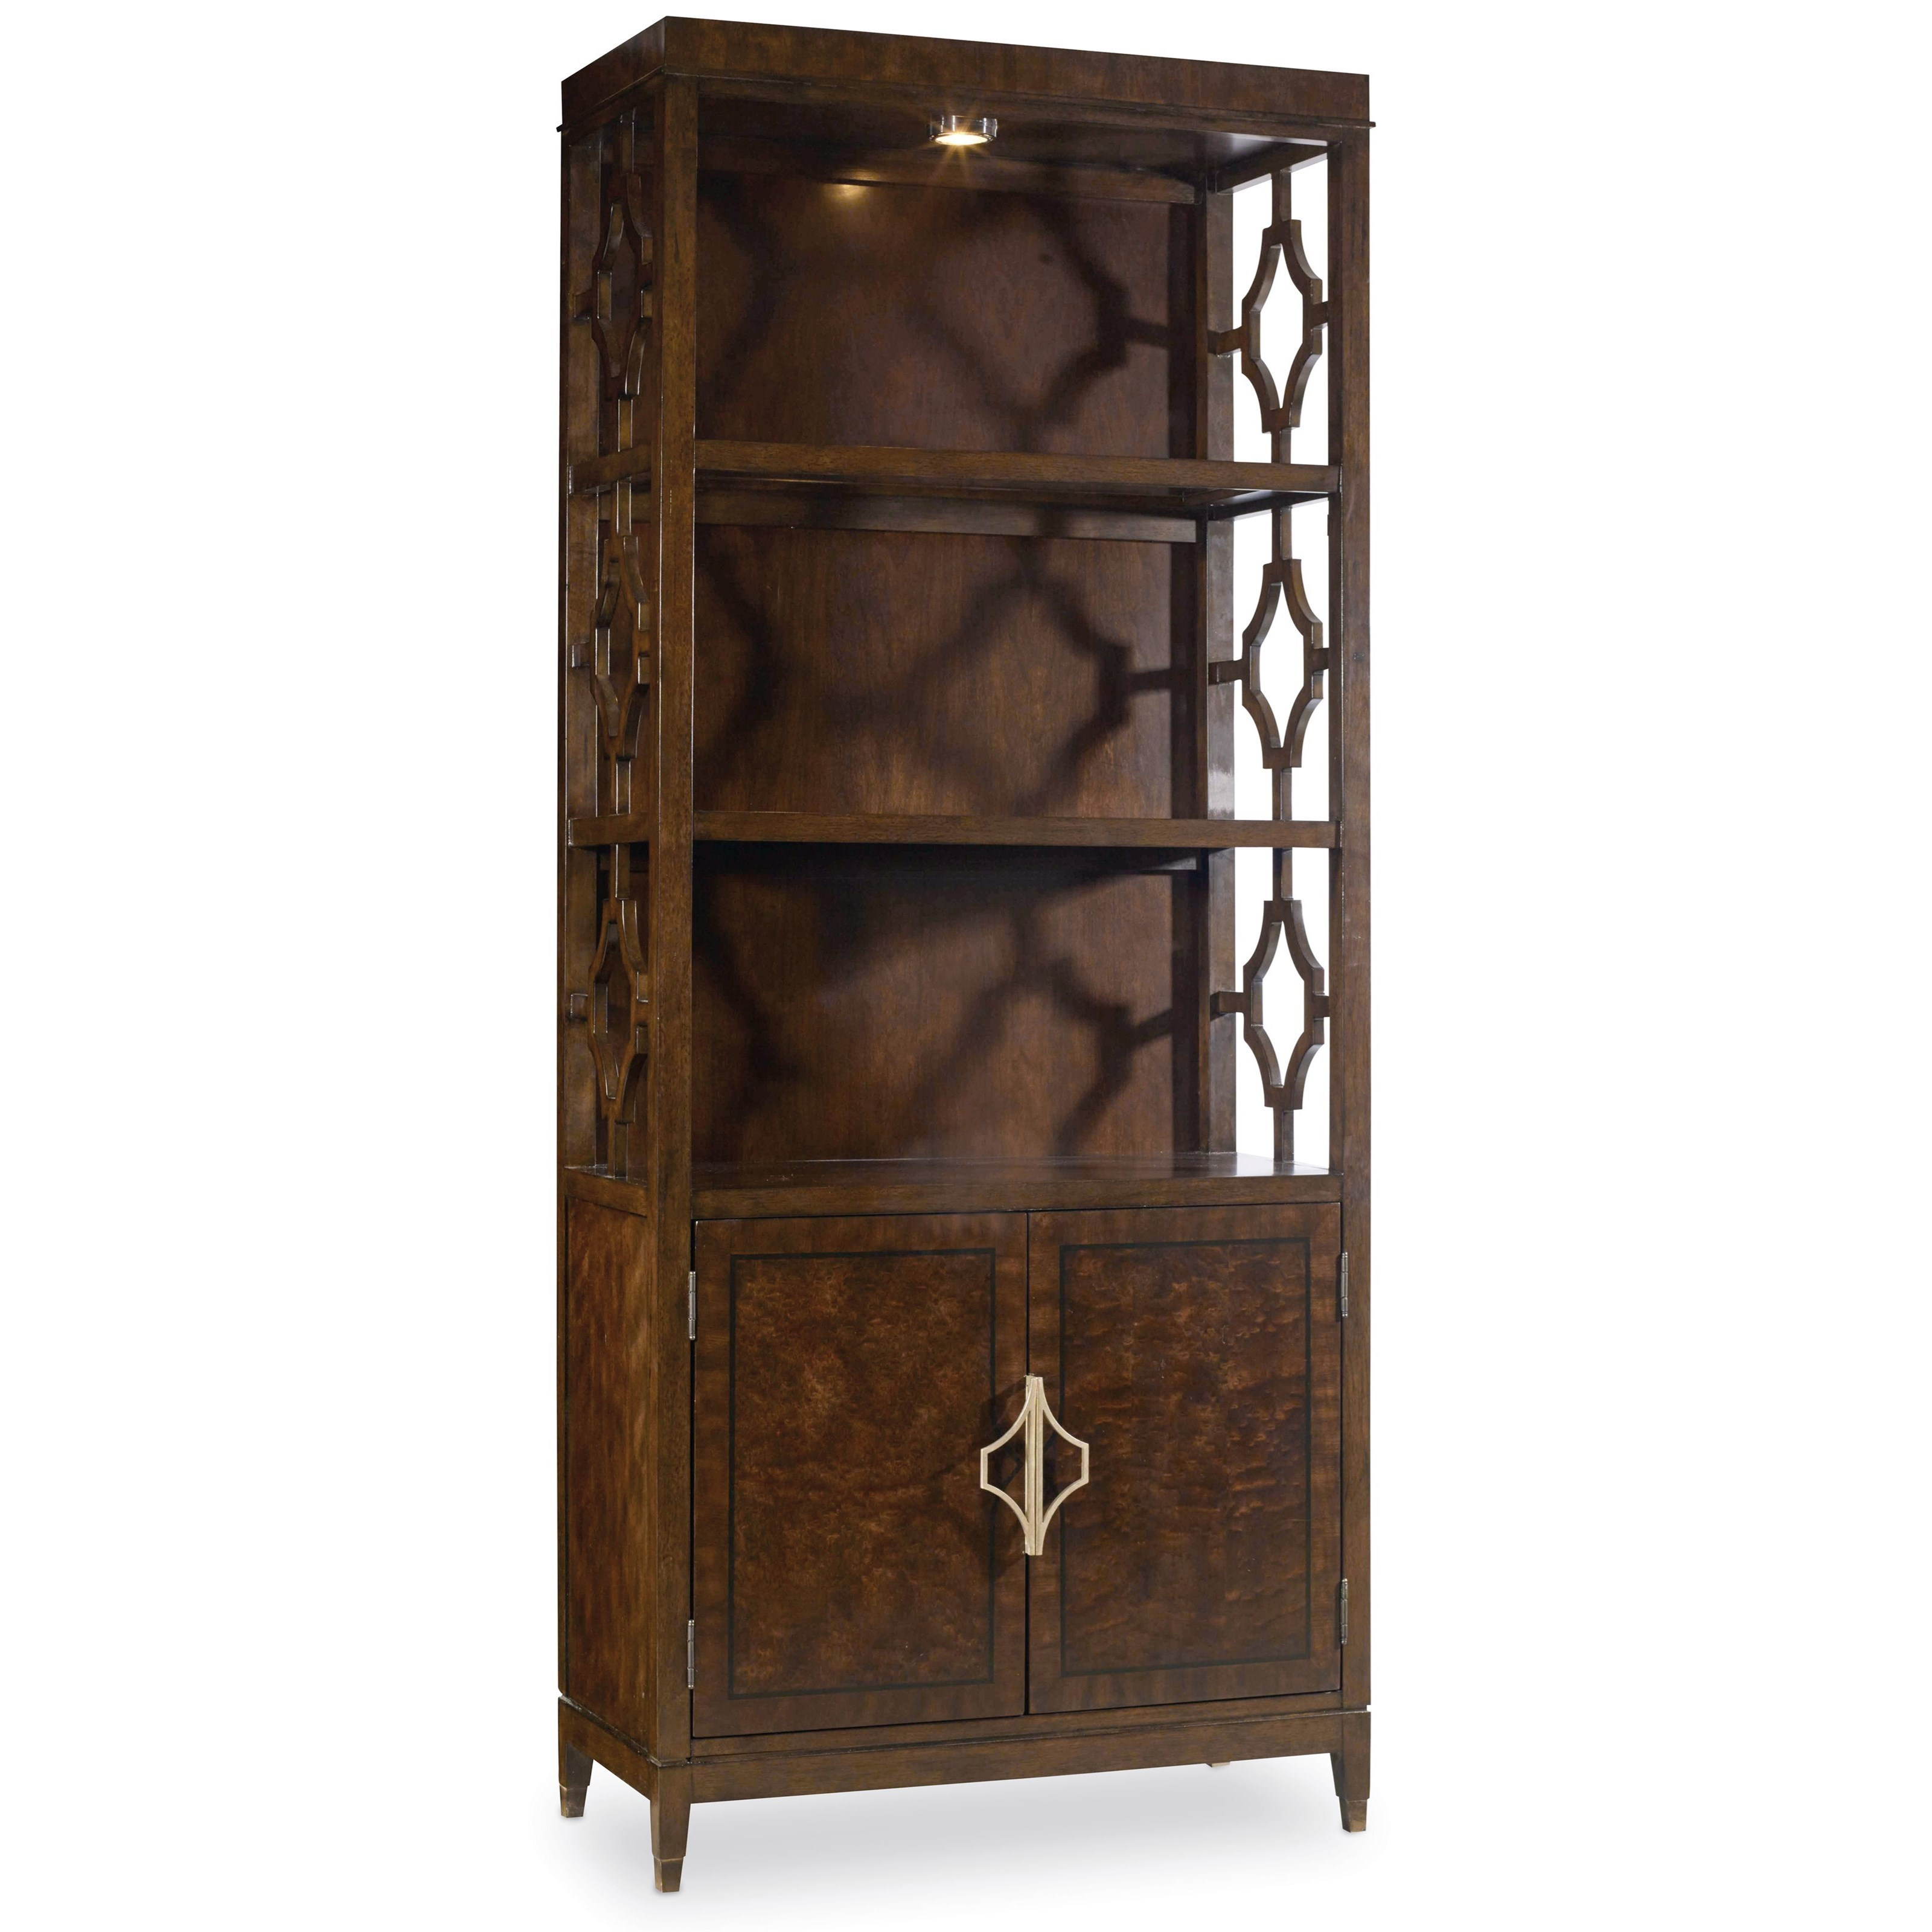 Hooker Furniture Skyline 5336 10446 Bunching Bookcase With Touch Lighting |  Baeru0027s Furniture | Bookcase   2 Pc. With Hutch